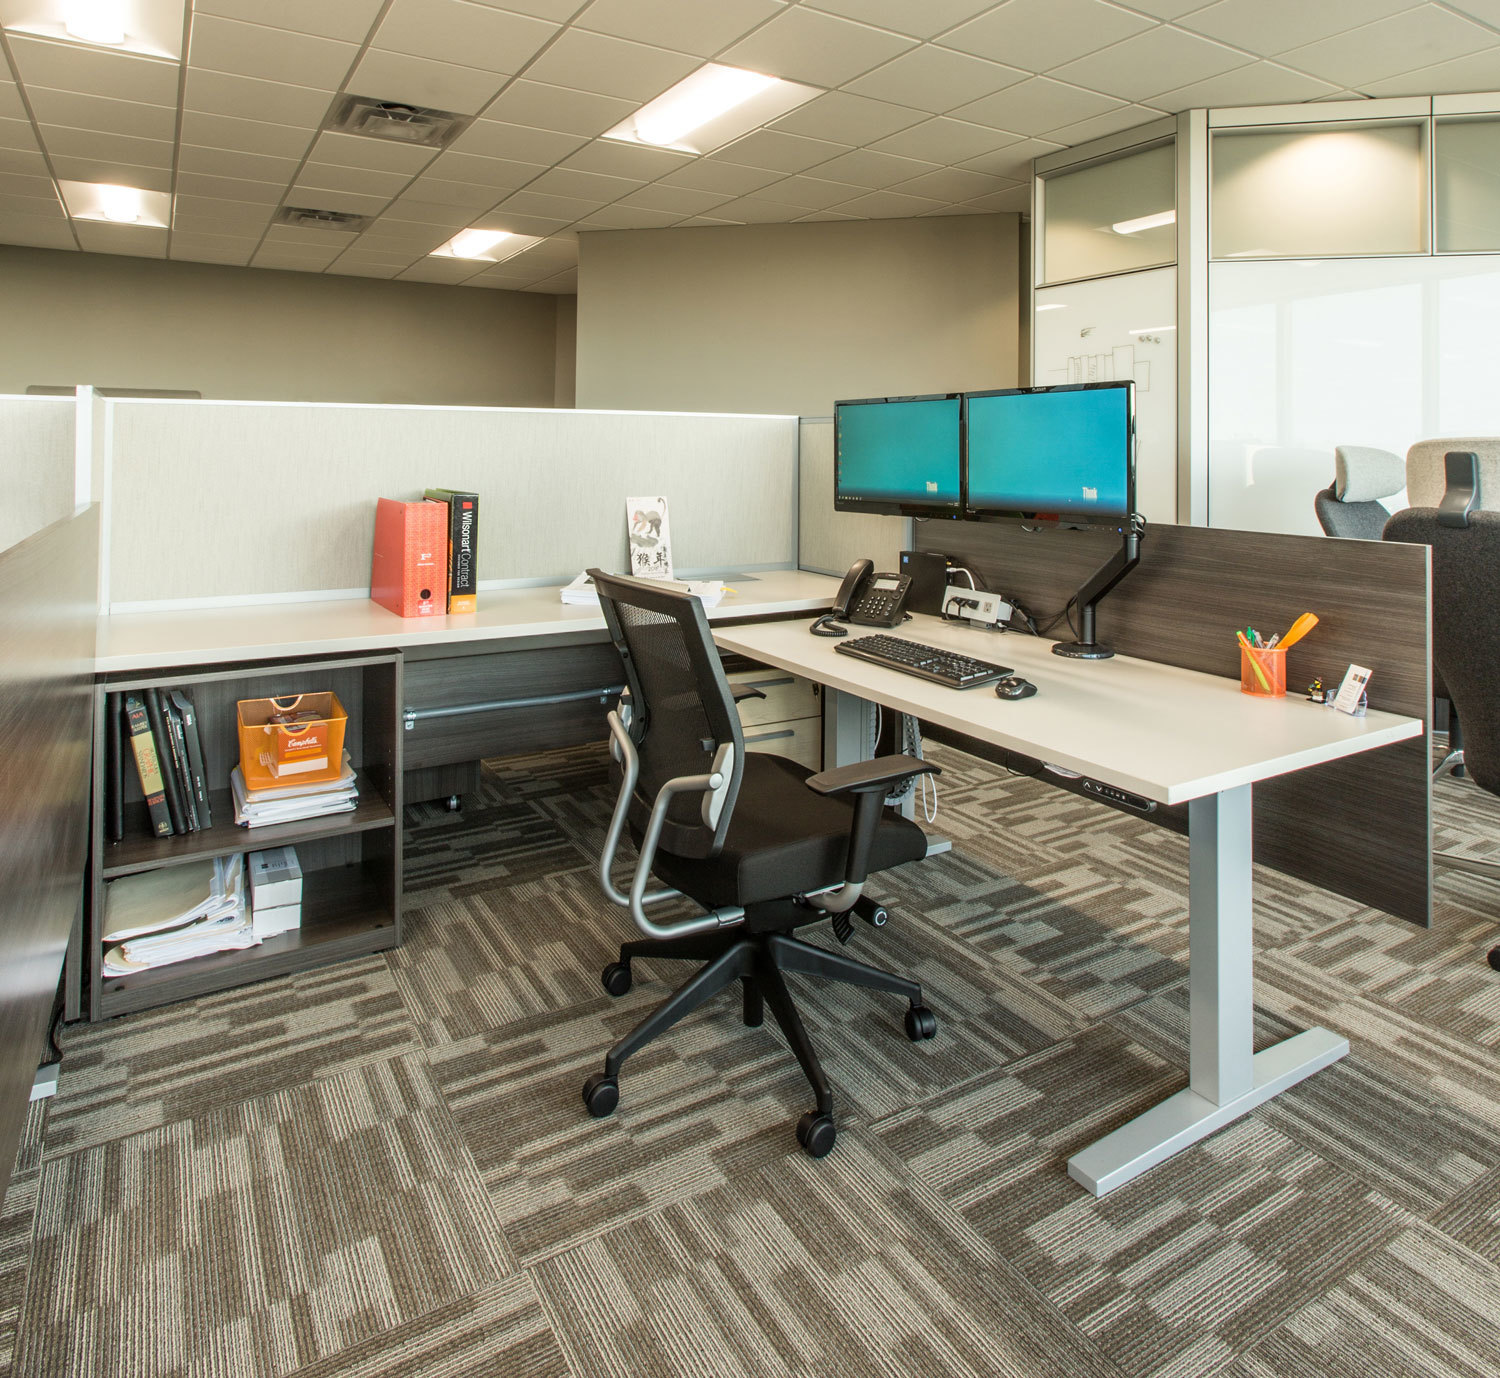 A versatile workstation desk featuring a standing desk at ISG in Bloomington, Minnesota, furnished by iSpace Environments.